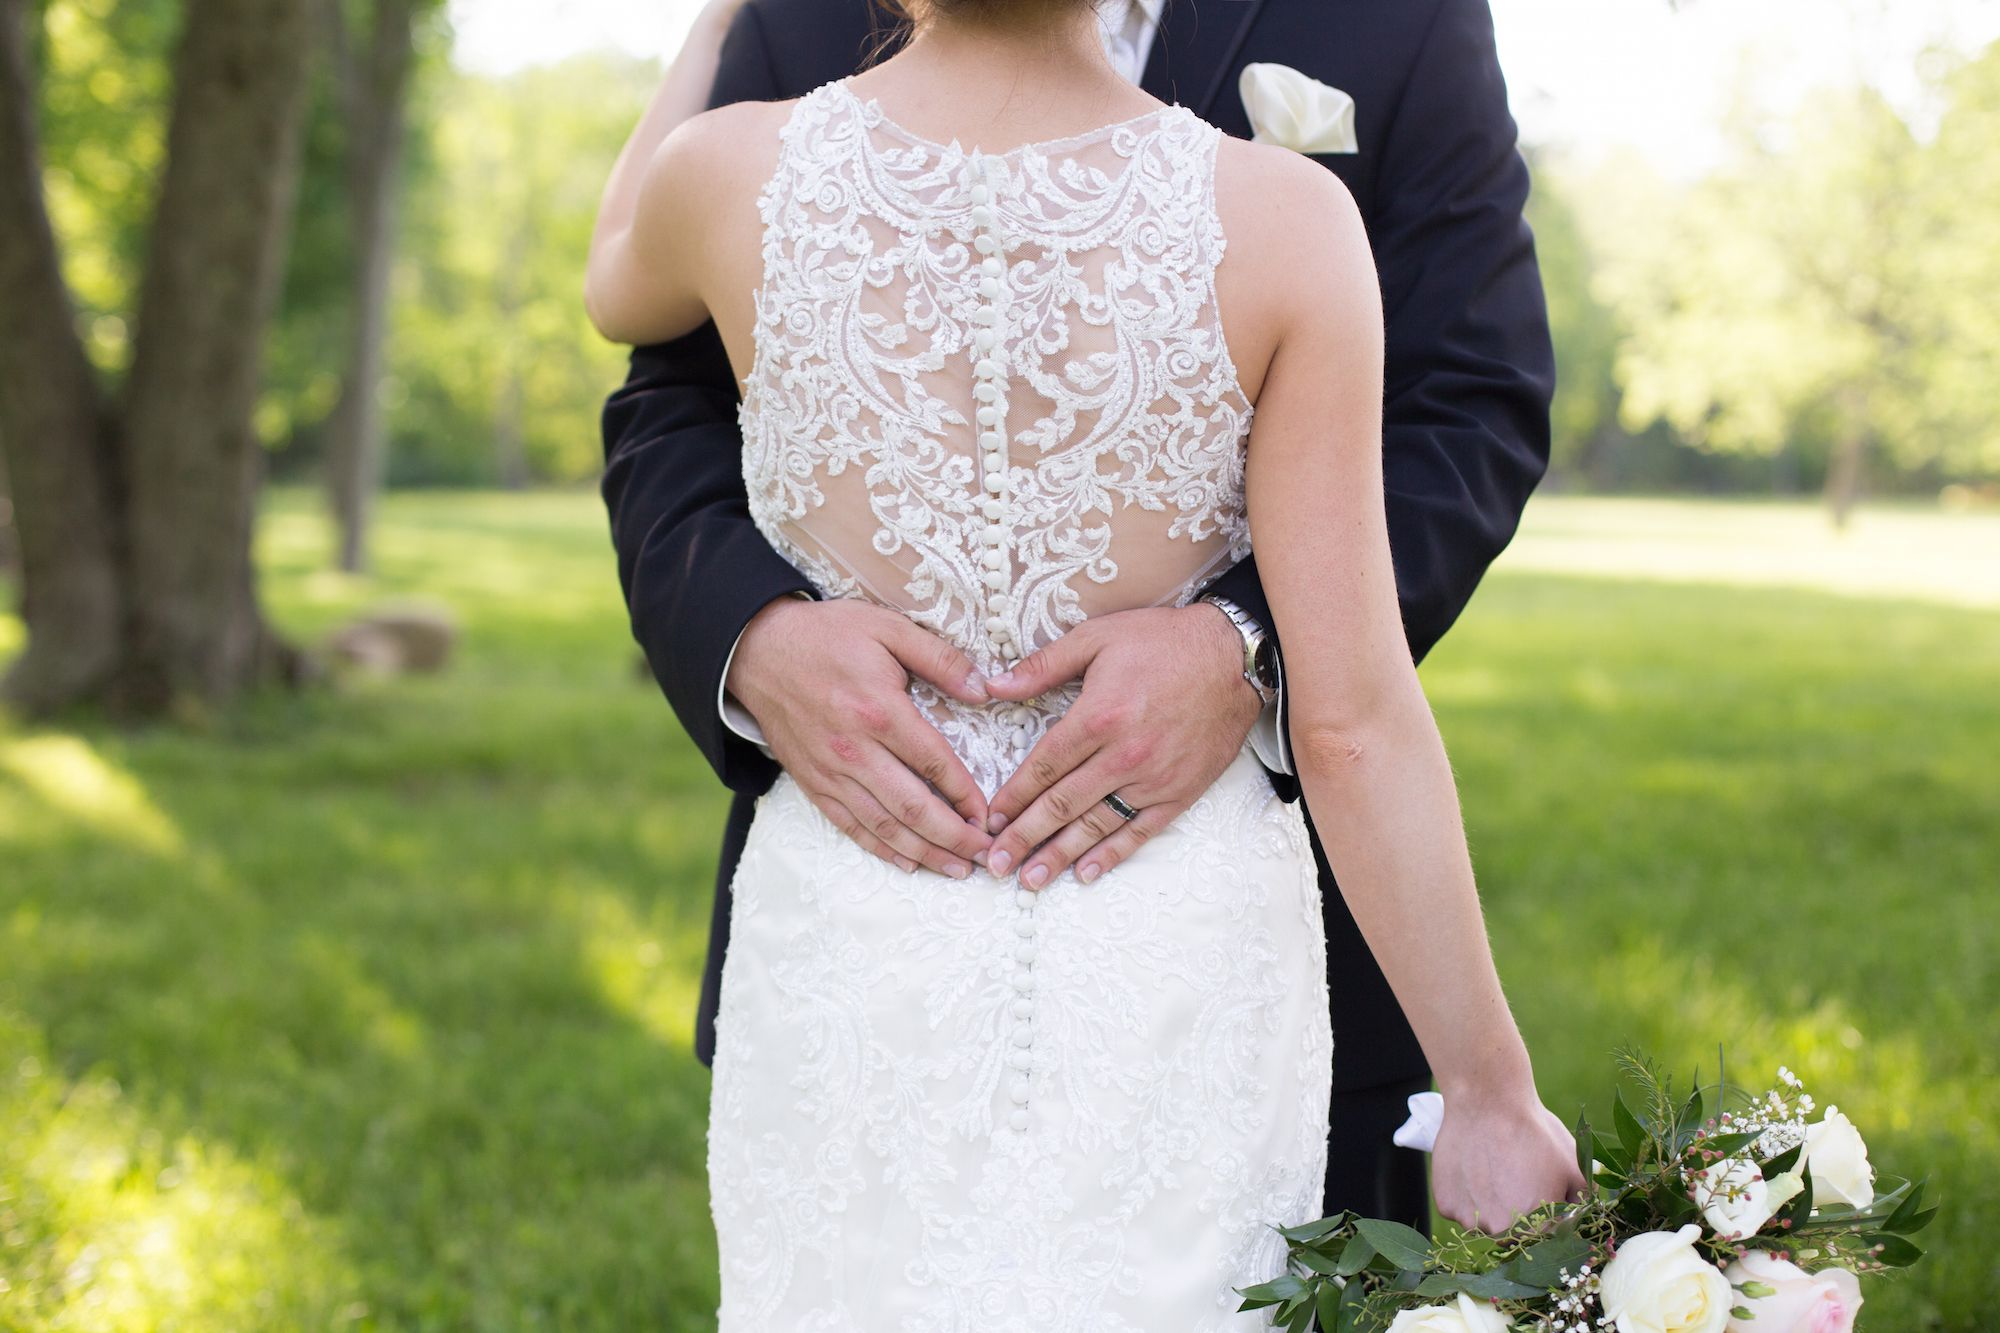 10 Things Your Wedding Photographer Wants You to Stop Doing